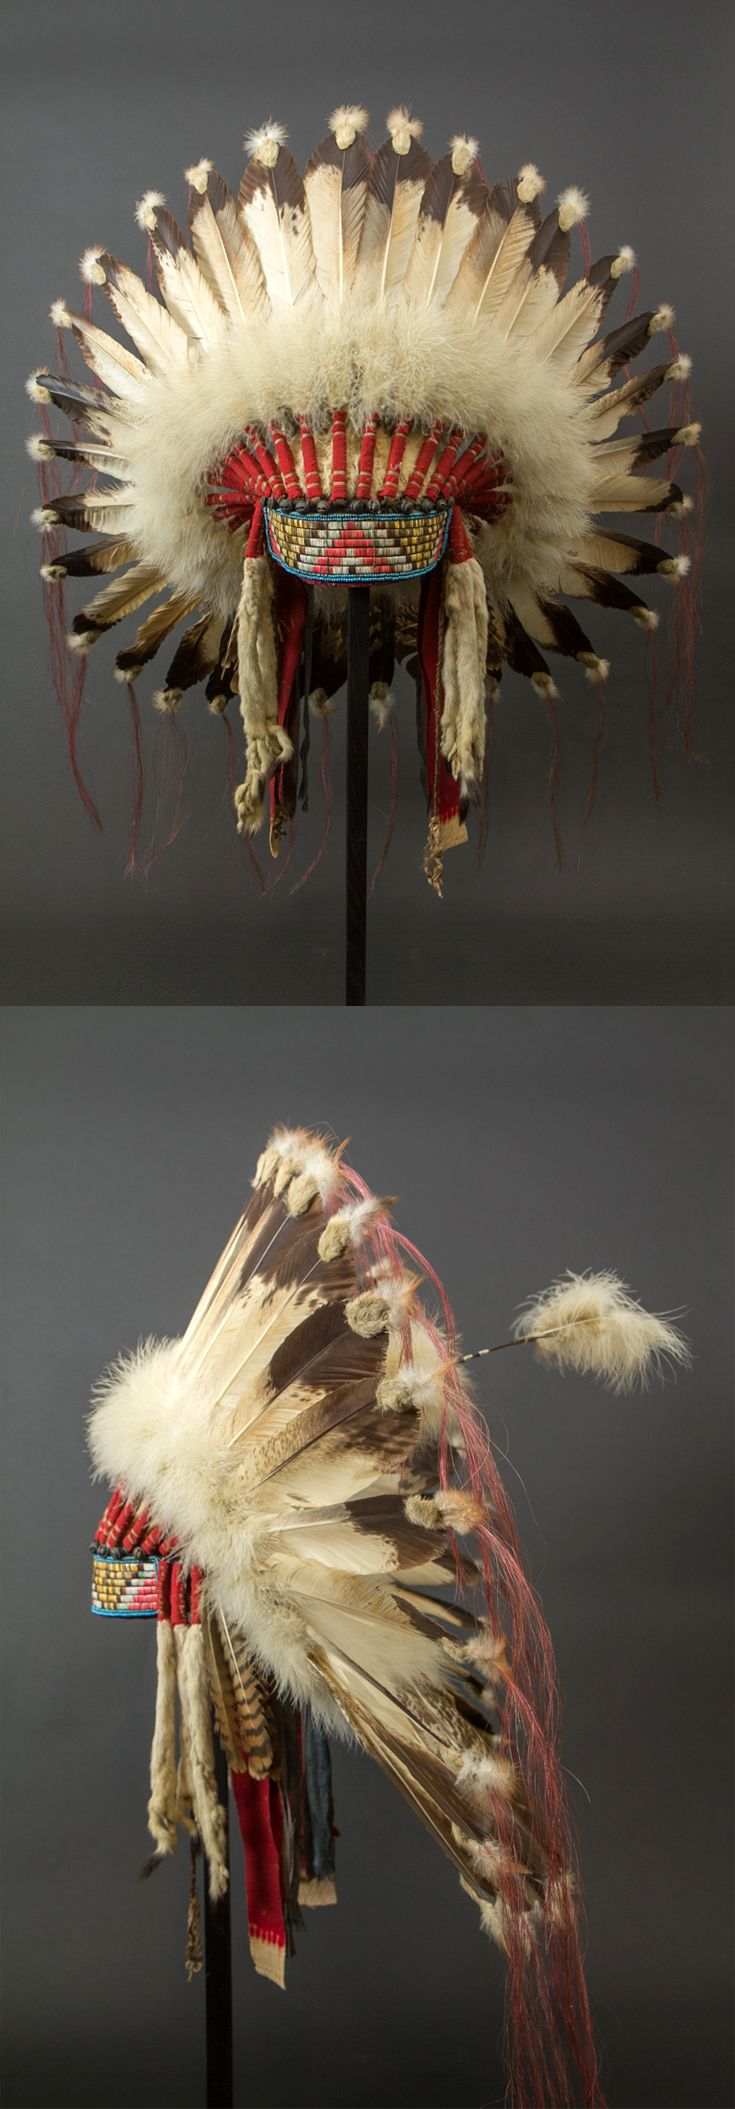 Warrior's headdress | Sioux / Plains Indians (USA) | 32 eagle feathers, horsehair, fabric, beads, quills, fur | ca. 1920 - 1930